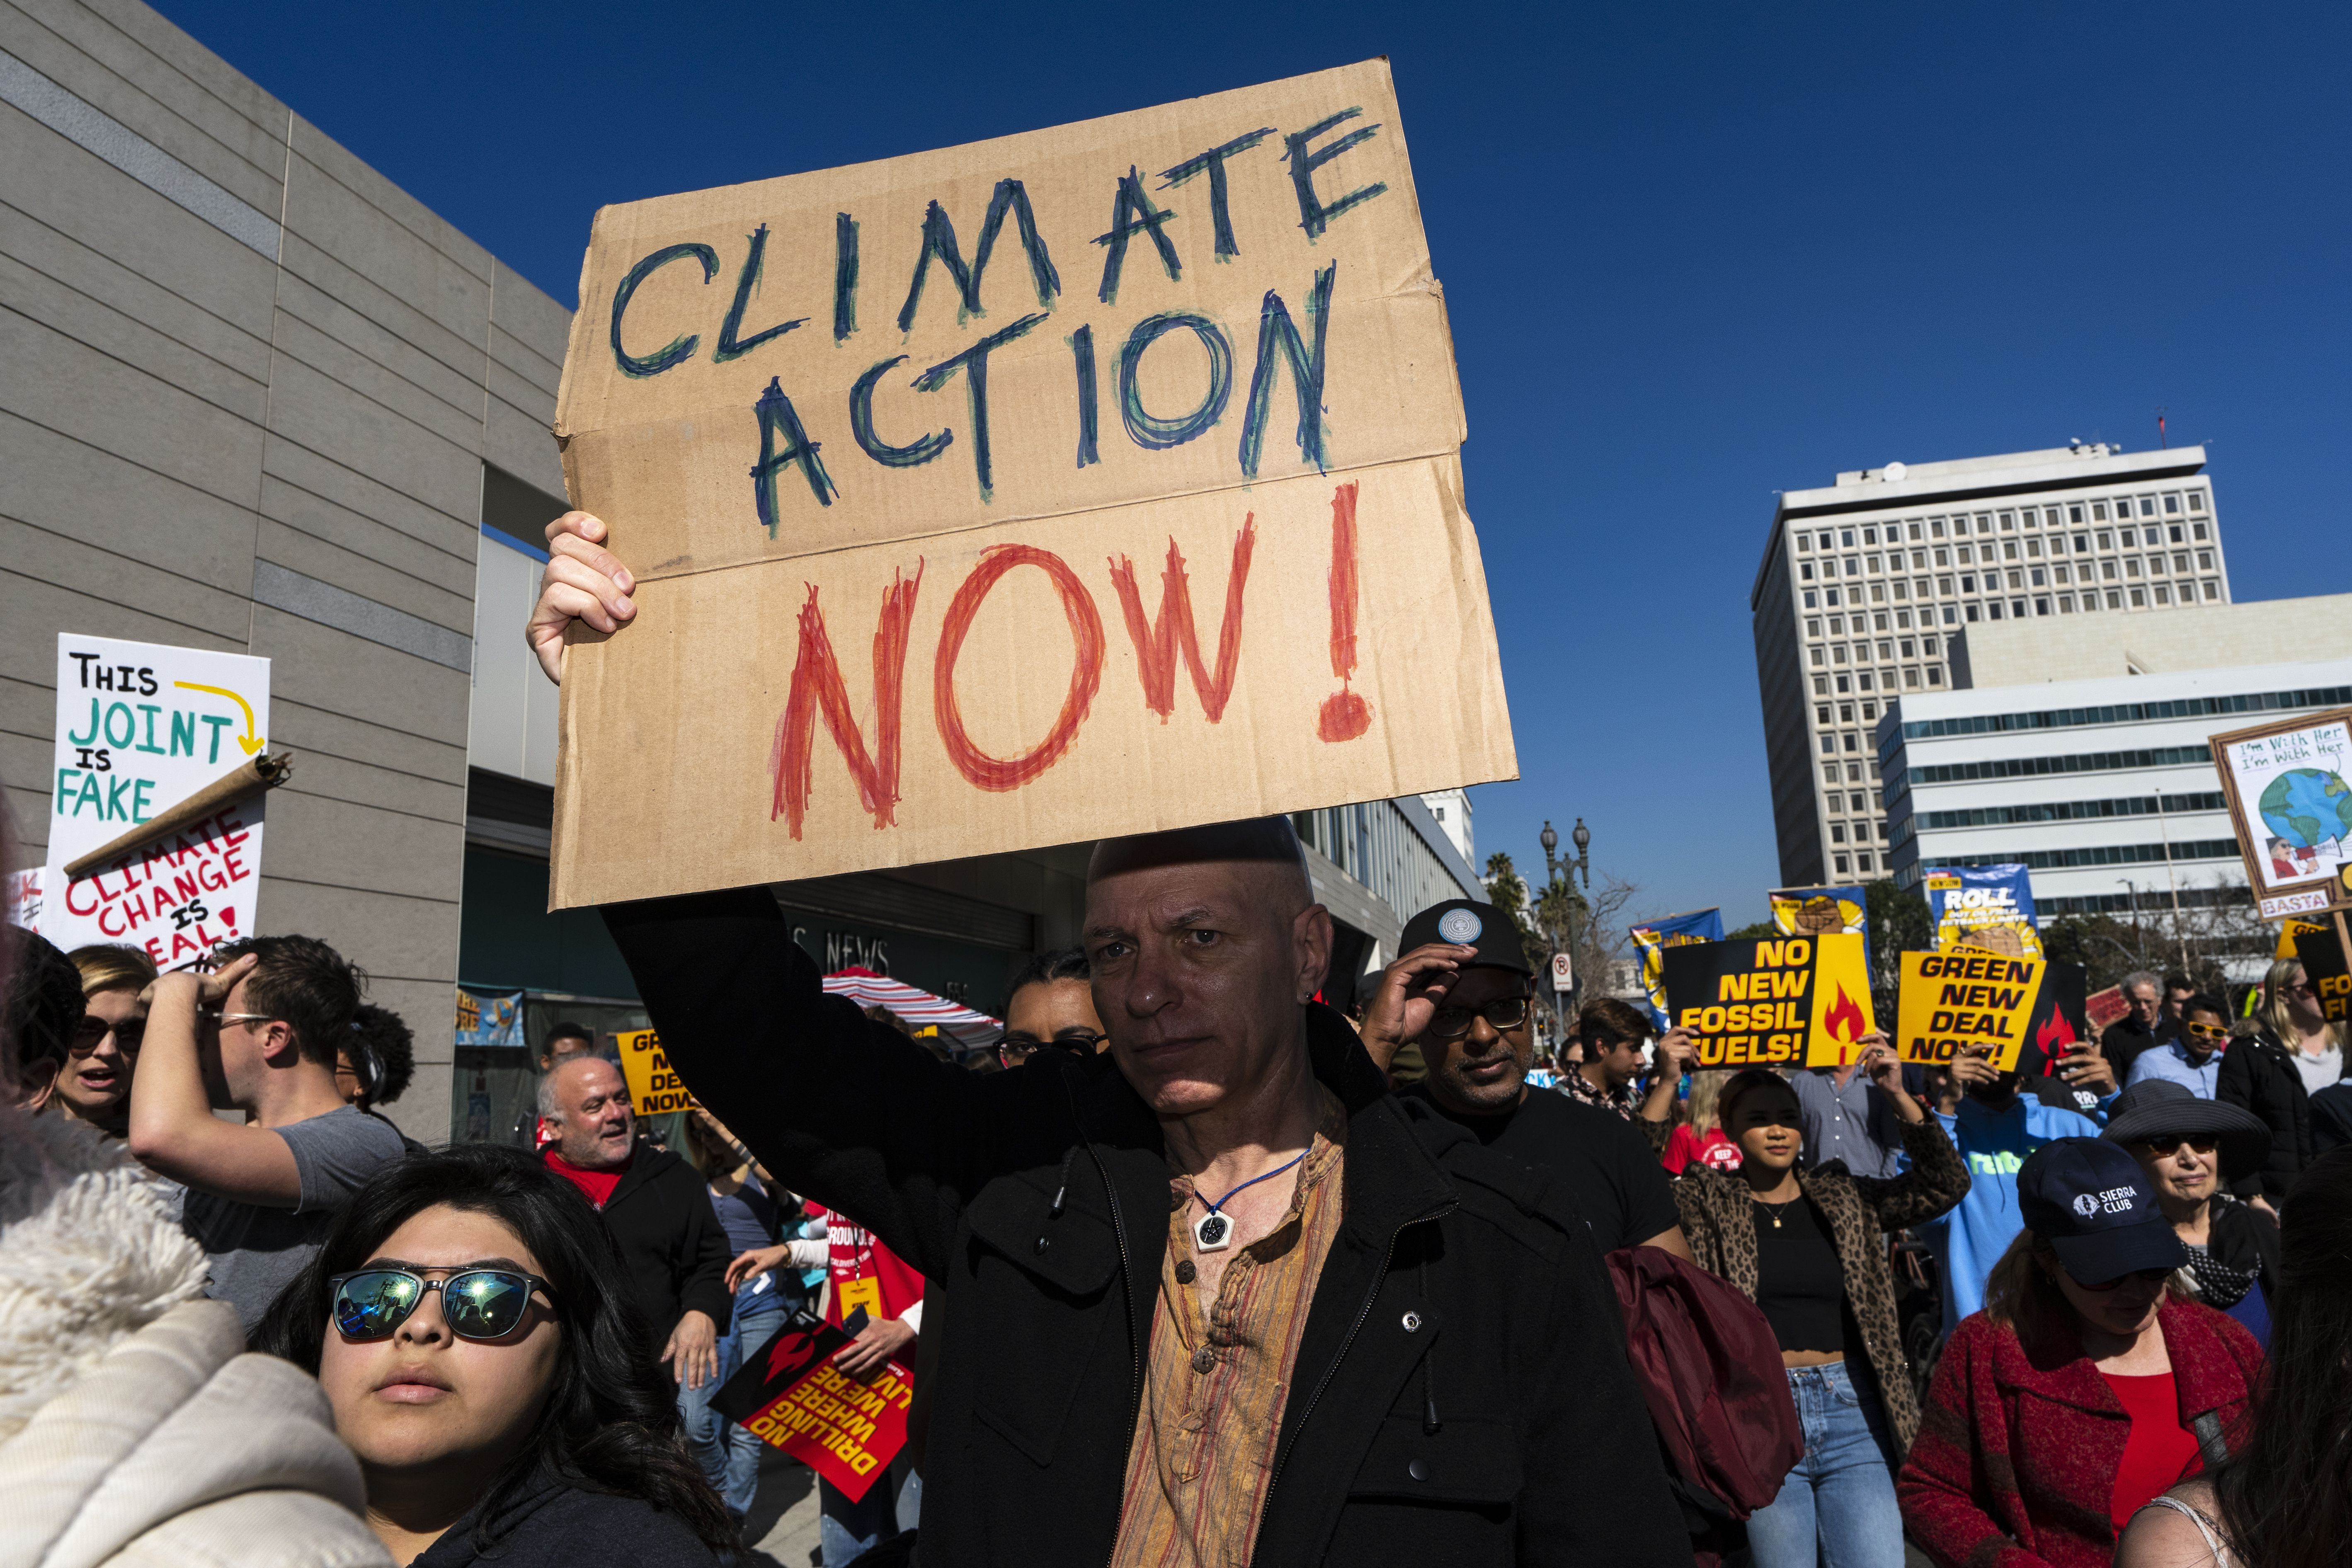 One-third of U.S. voters believe climate change is a crisis - Axios